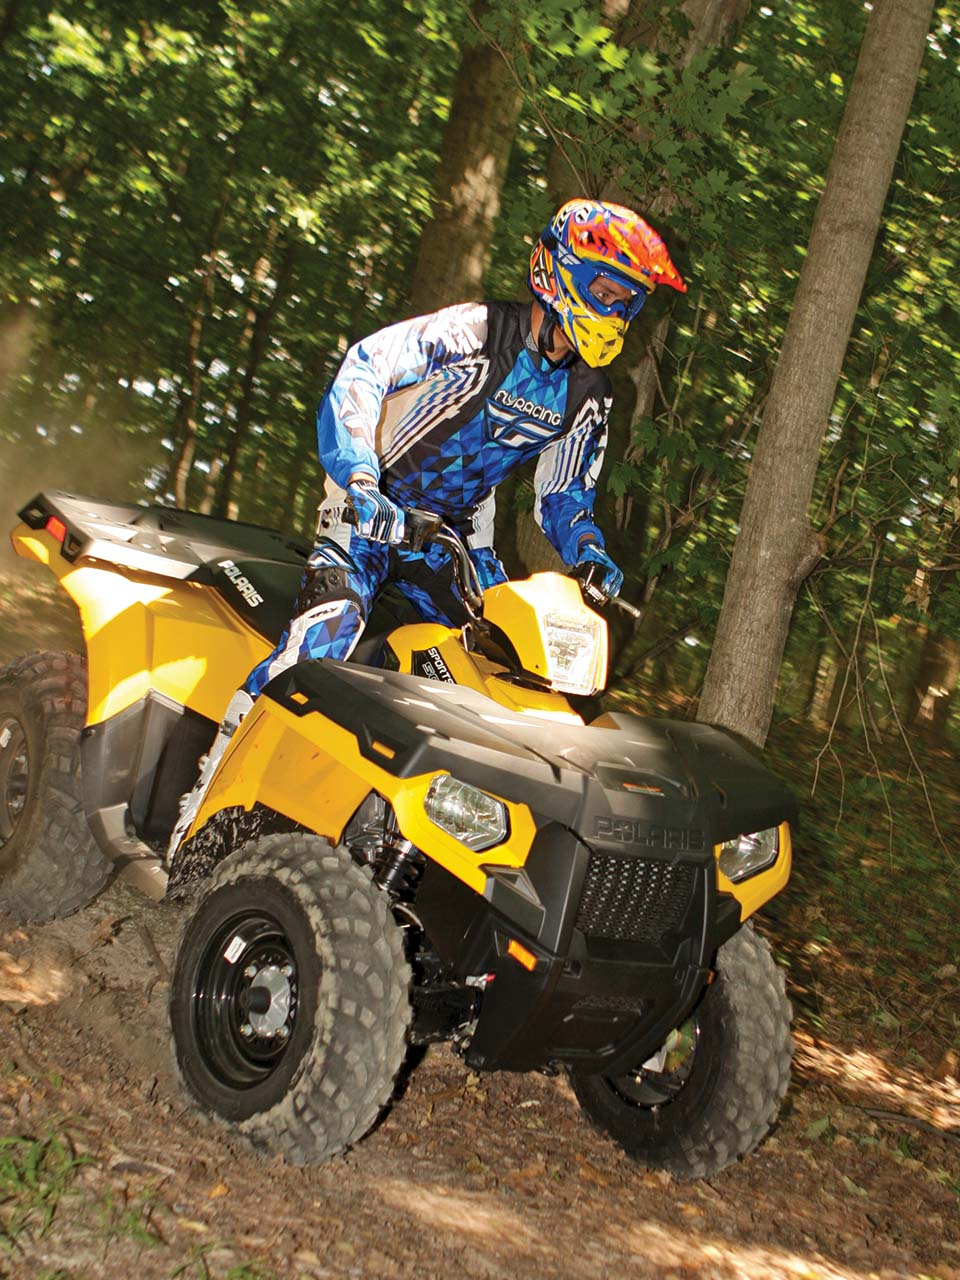 hight resolution of 2012 polaris sportsman500ho yellow front right riding through